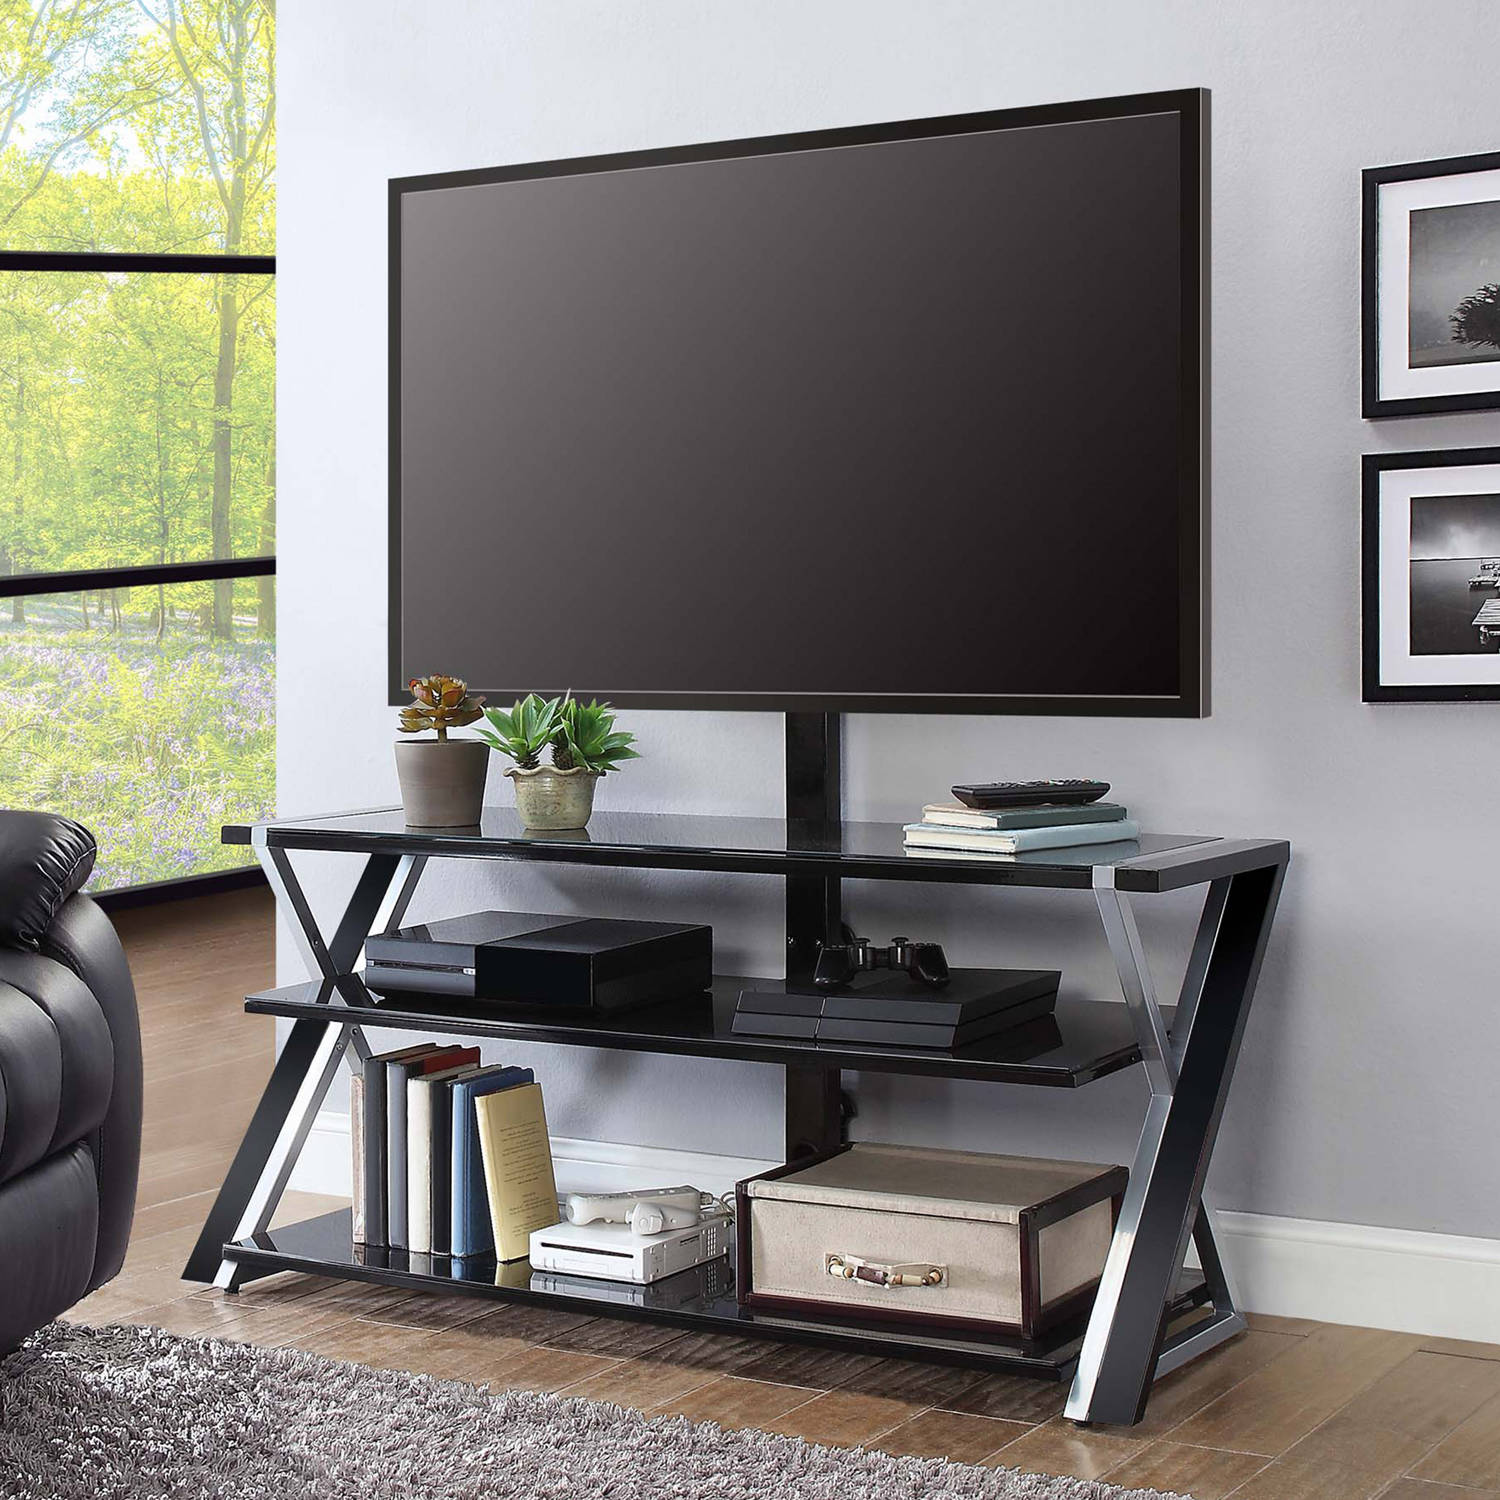 whalen 3 in 1 flat panel tv stand for tvs up to 70 764053512629 ebay. Black Bedroom Furniture Sets. Home Design Ideas